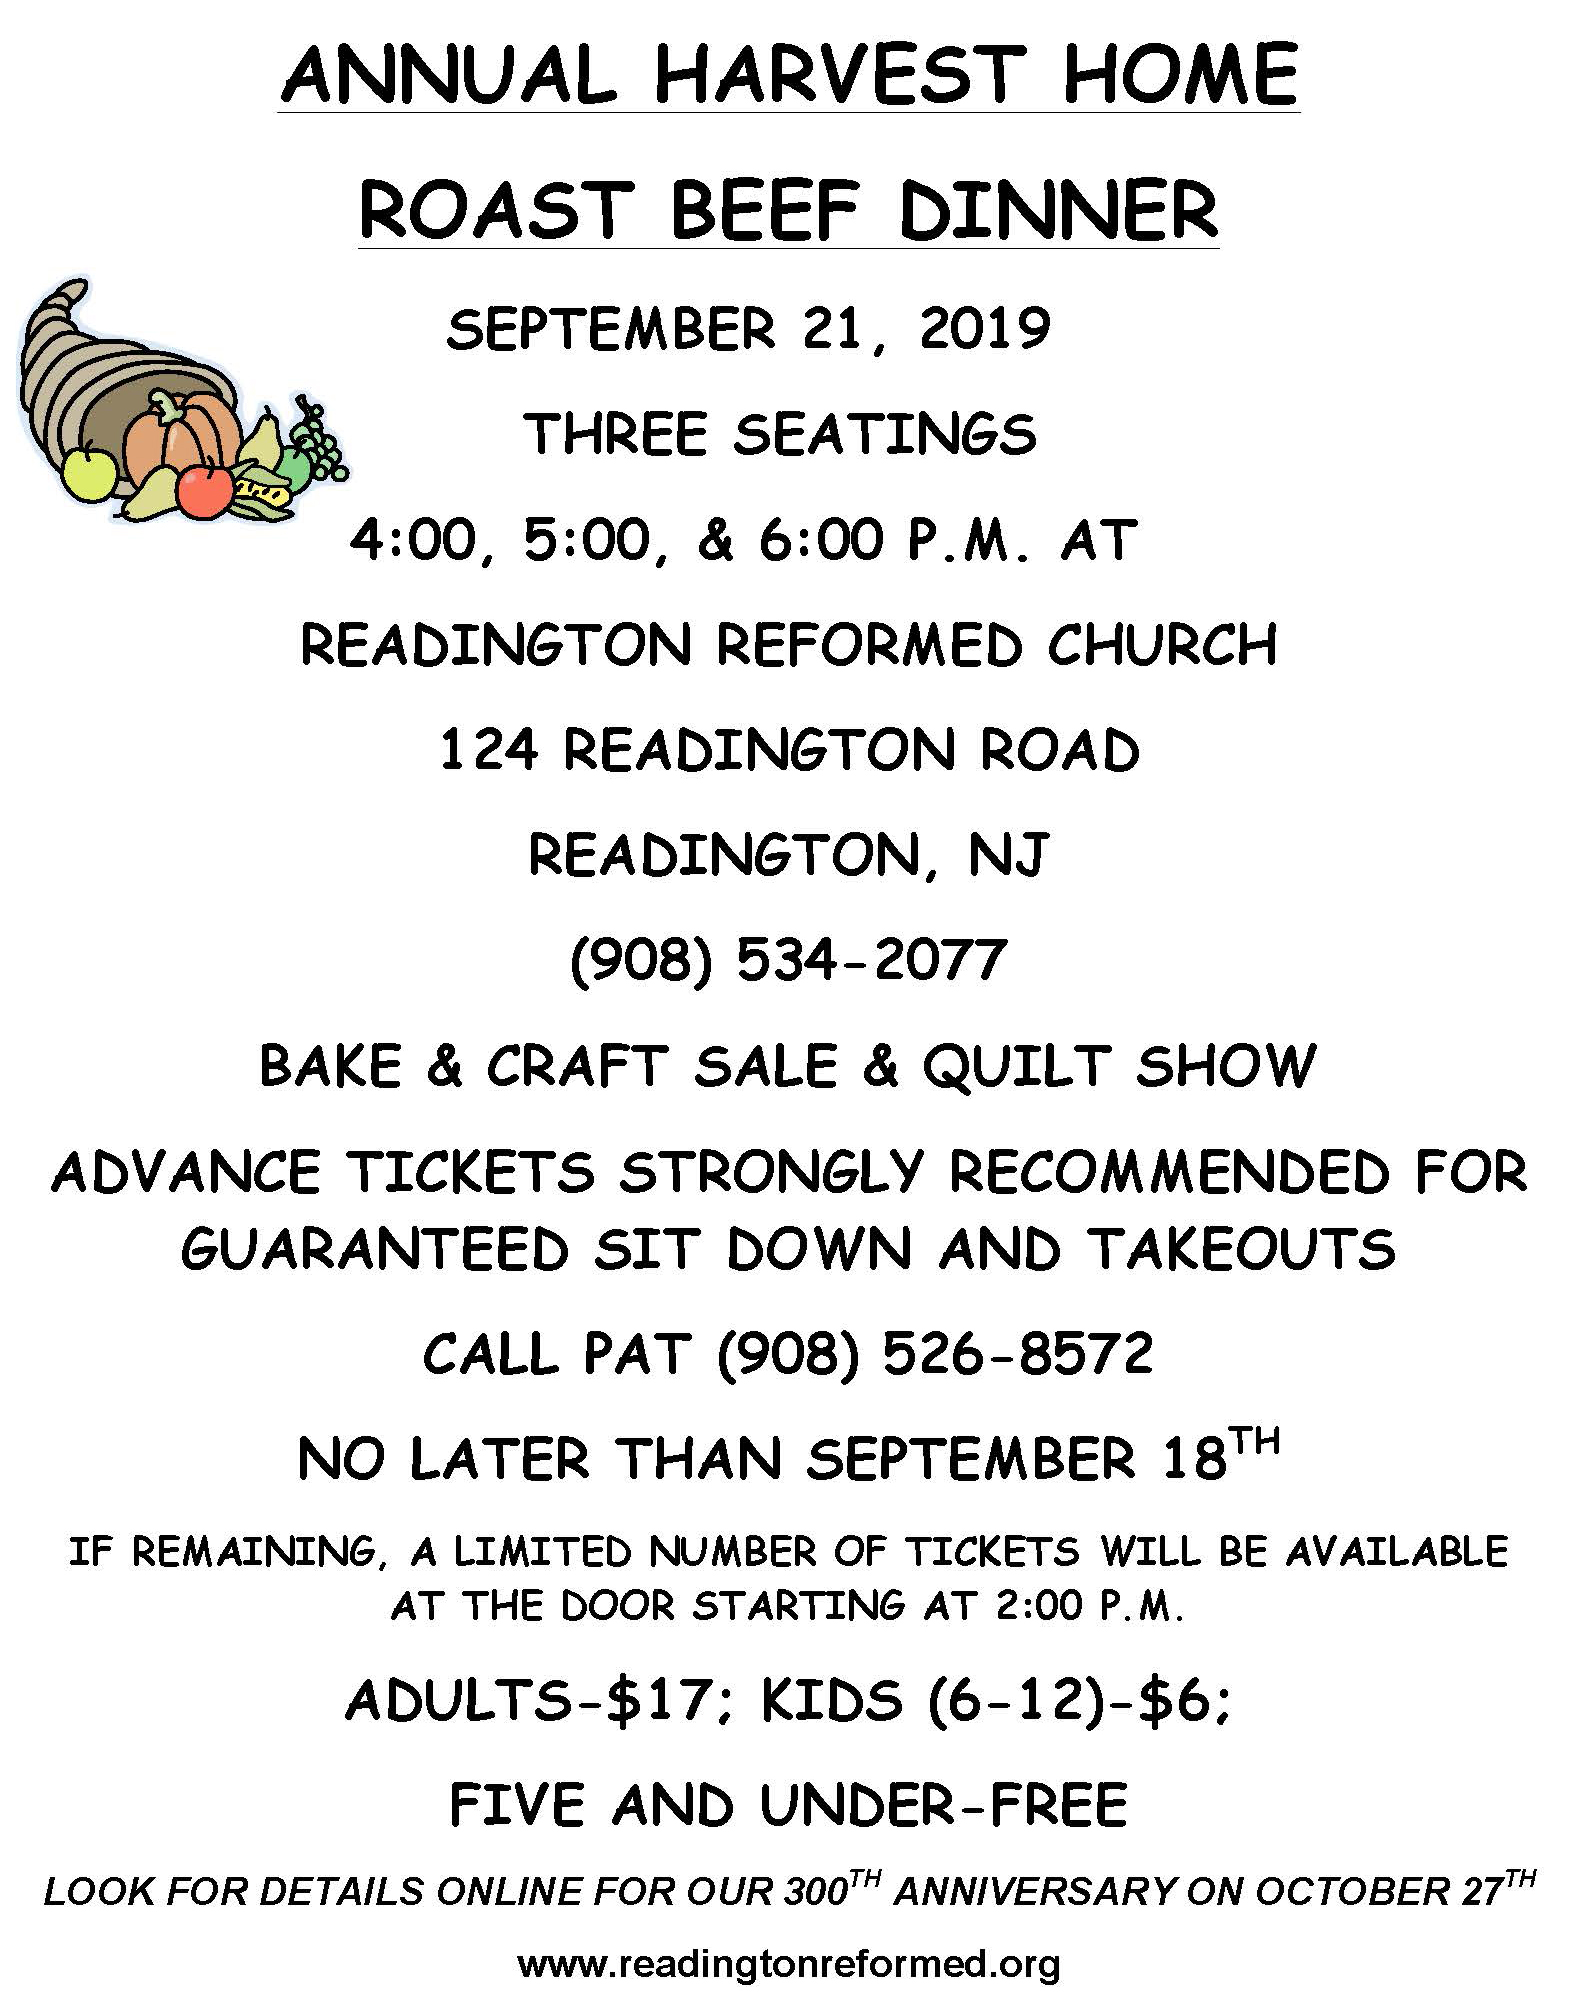 Readington Harvest Home Roast Beef Dinner flyer.jpg